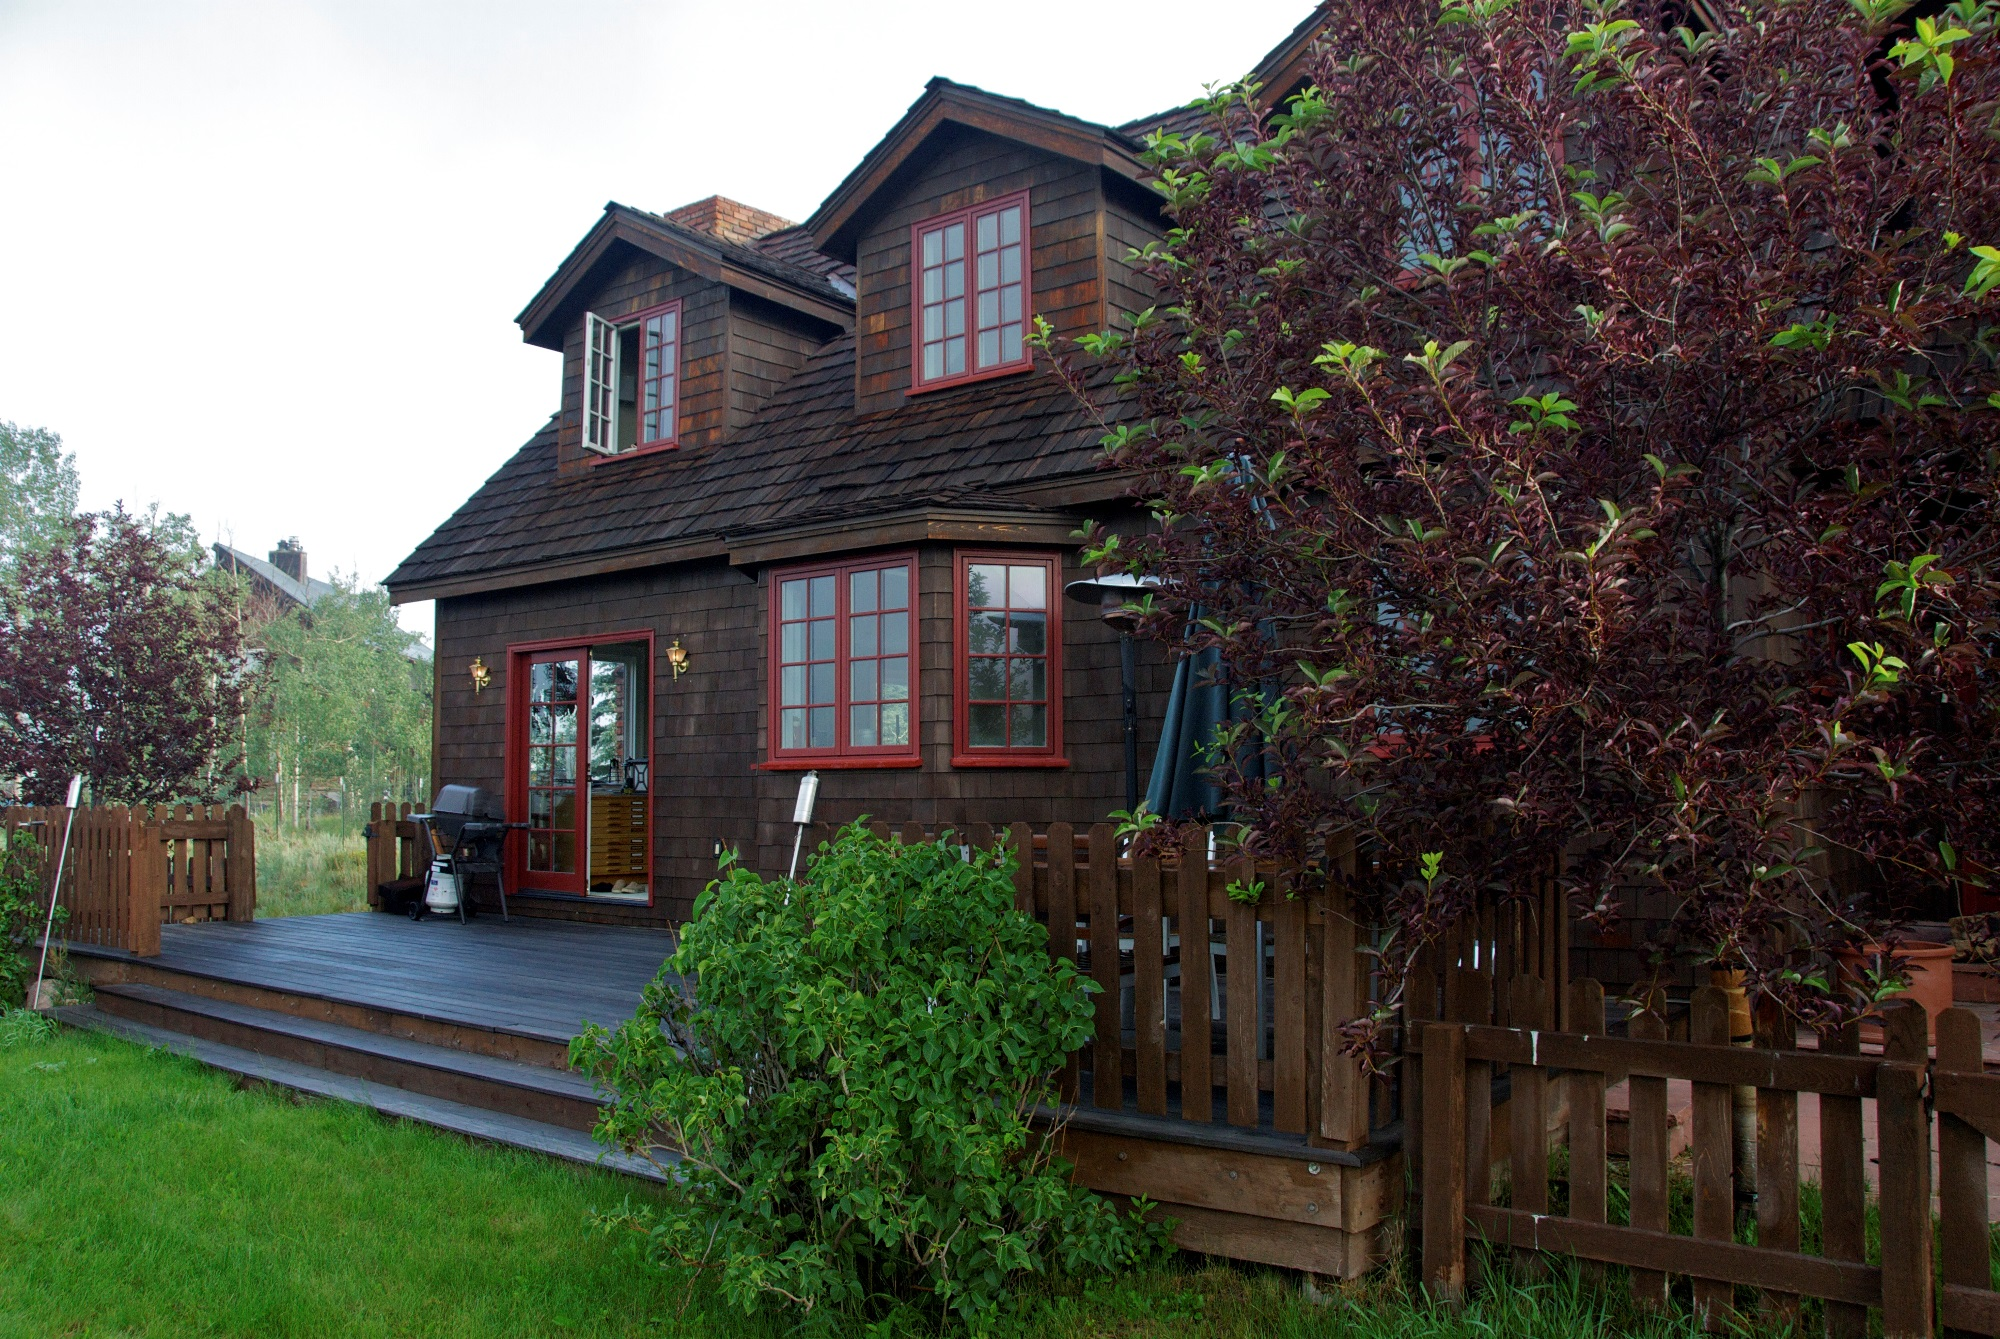 Single Family Home for Sale at Sophisticated Mountain Home 179 Upper Allen Road Crested Butte, Colorado 81224 United States